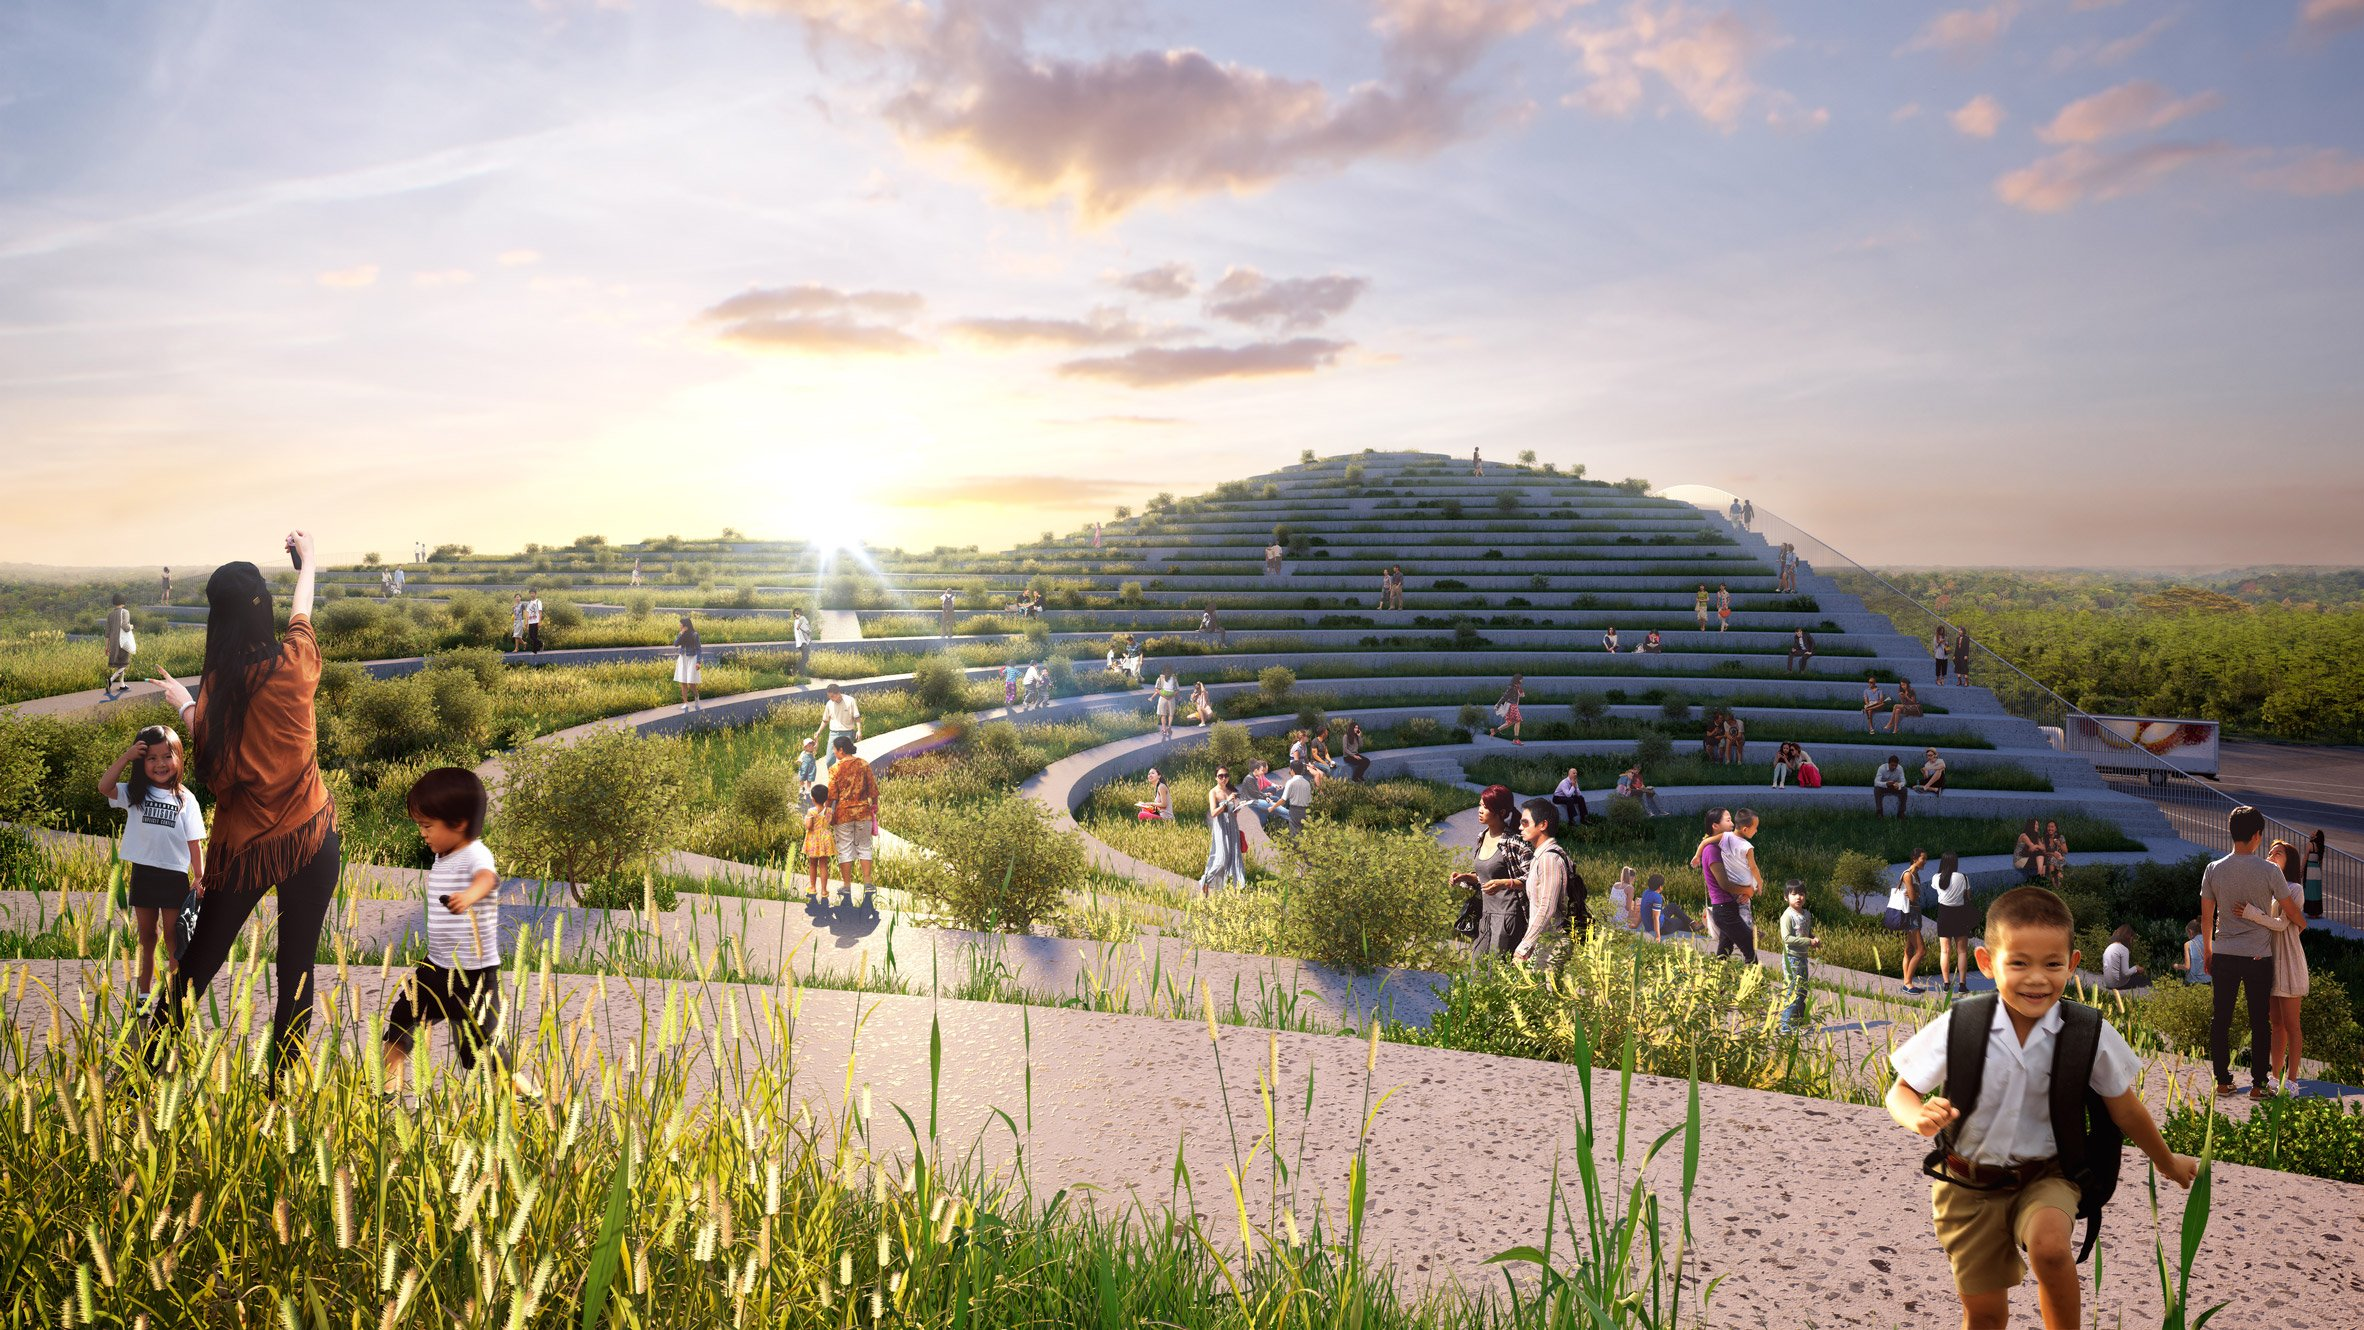 MVRDV plans Tainan Xinhua Fruit and Vegetable Market with rooftop farm